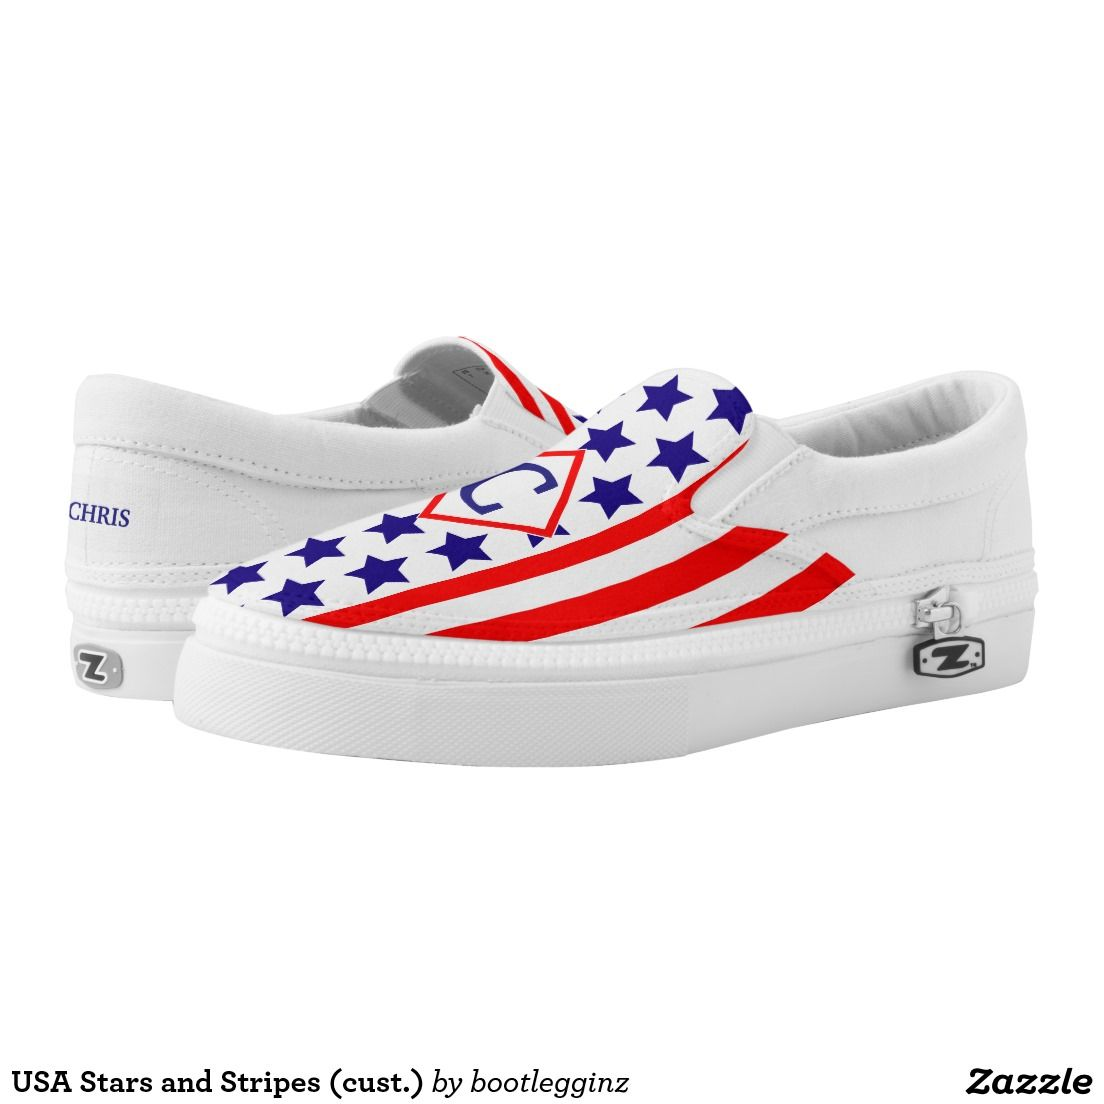 USA Stars and Stripes (cust.) Slip-On Sneakers